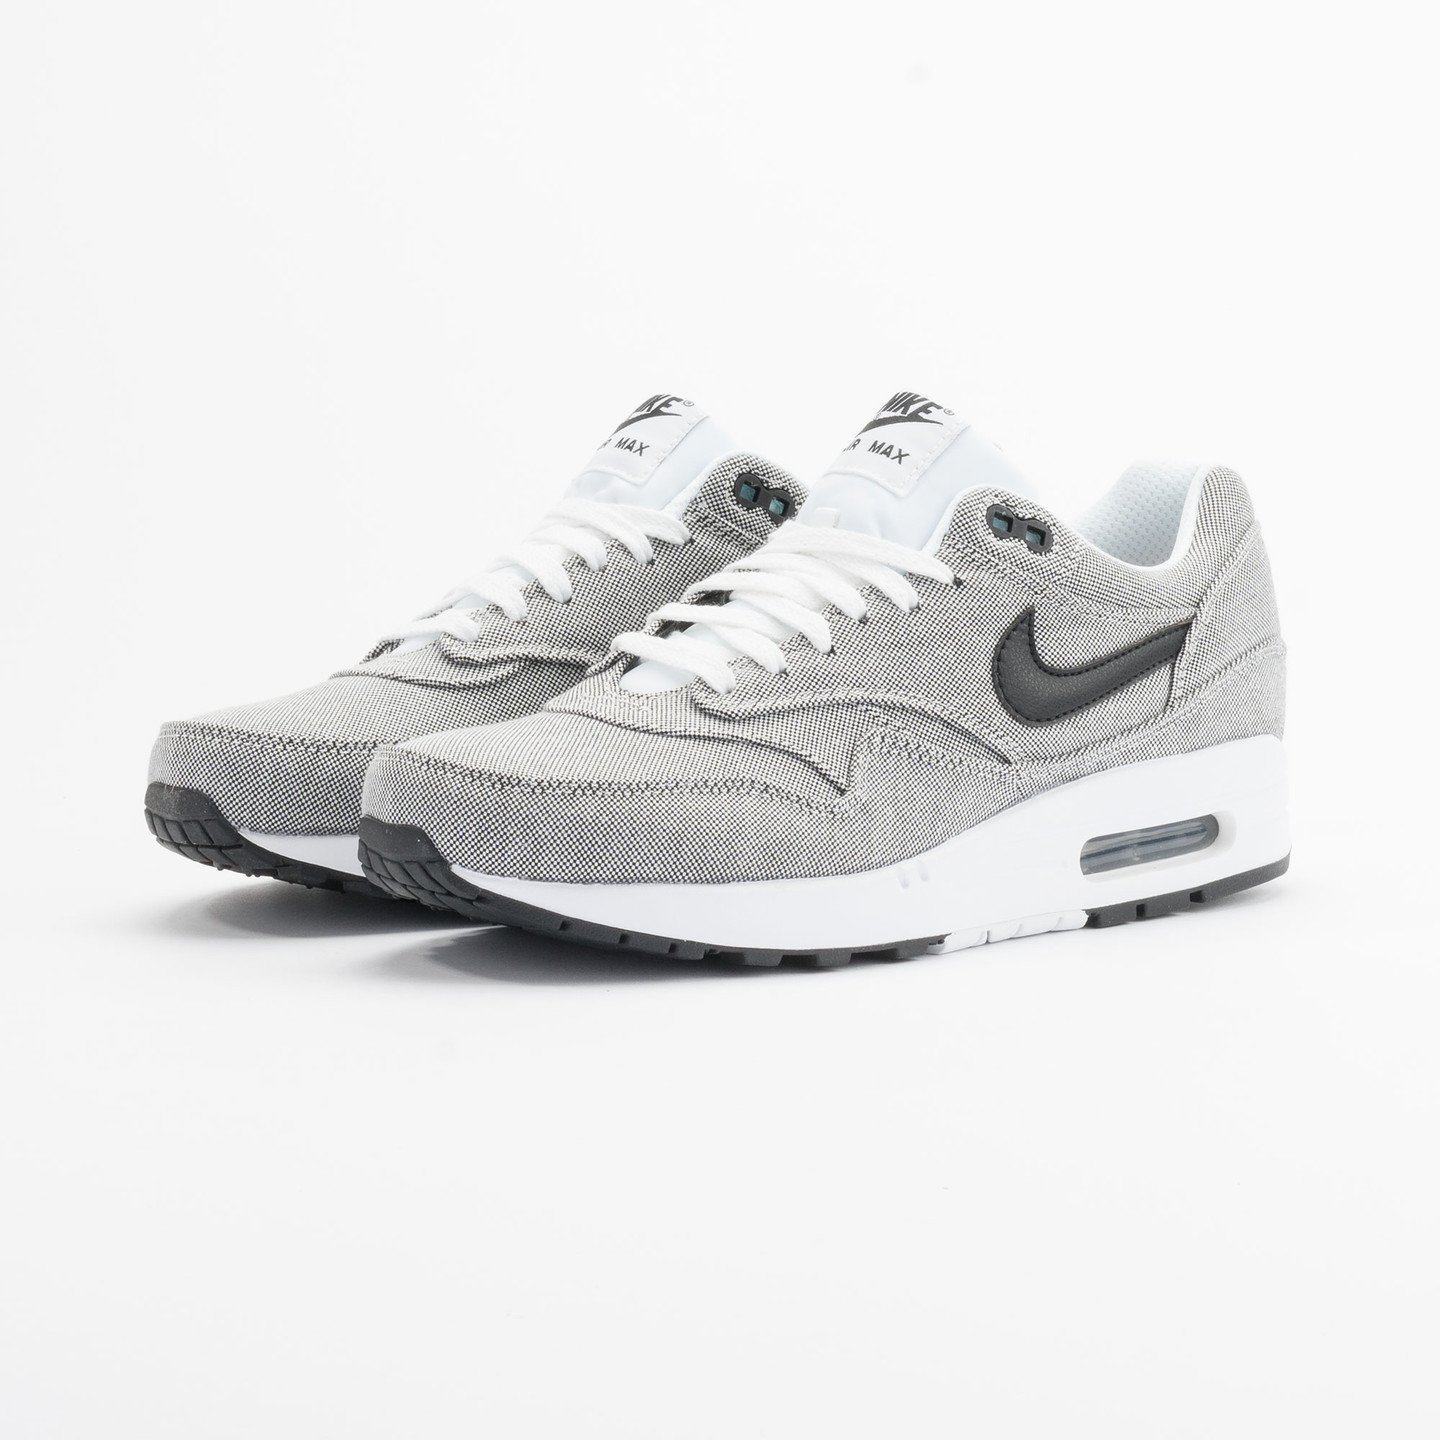 Nike Air Max 1 Prm Picknick Pack Black/White 512033-103-47.5